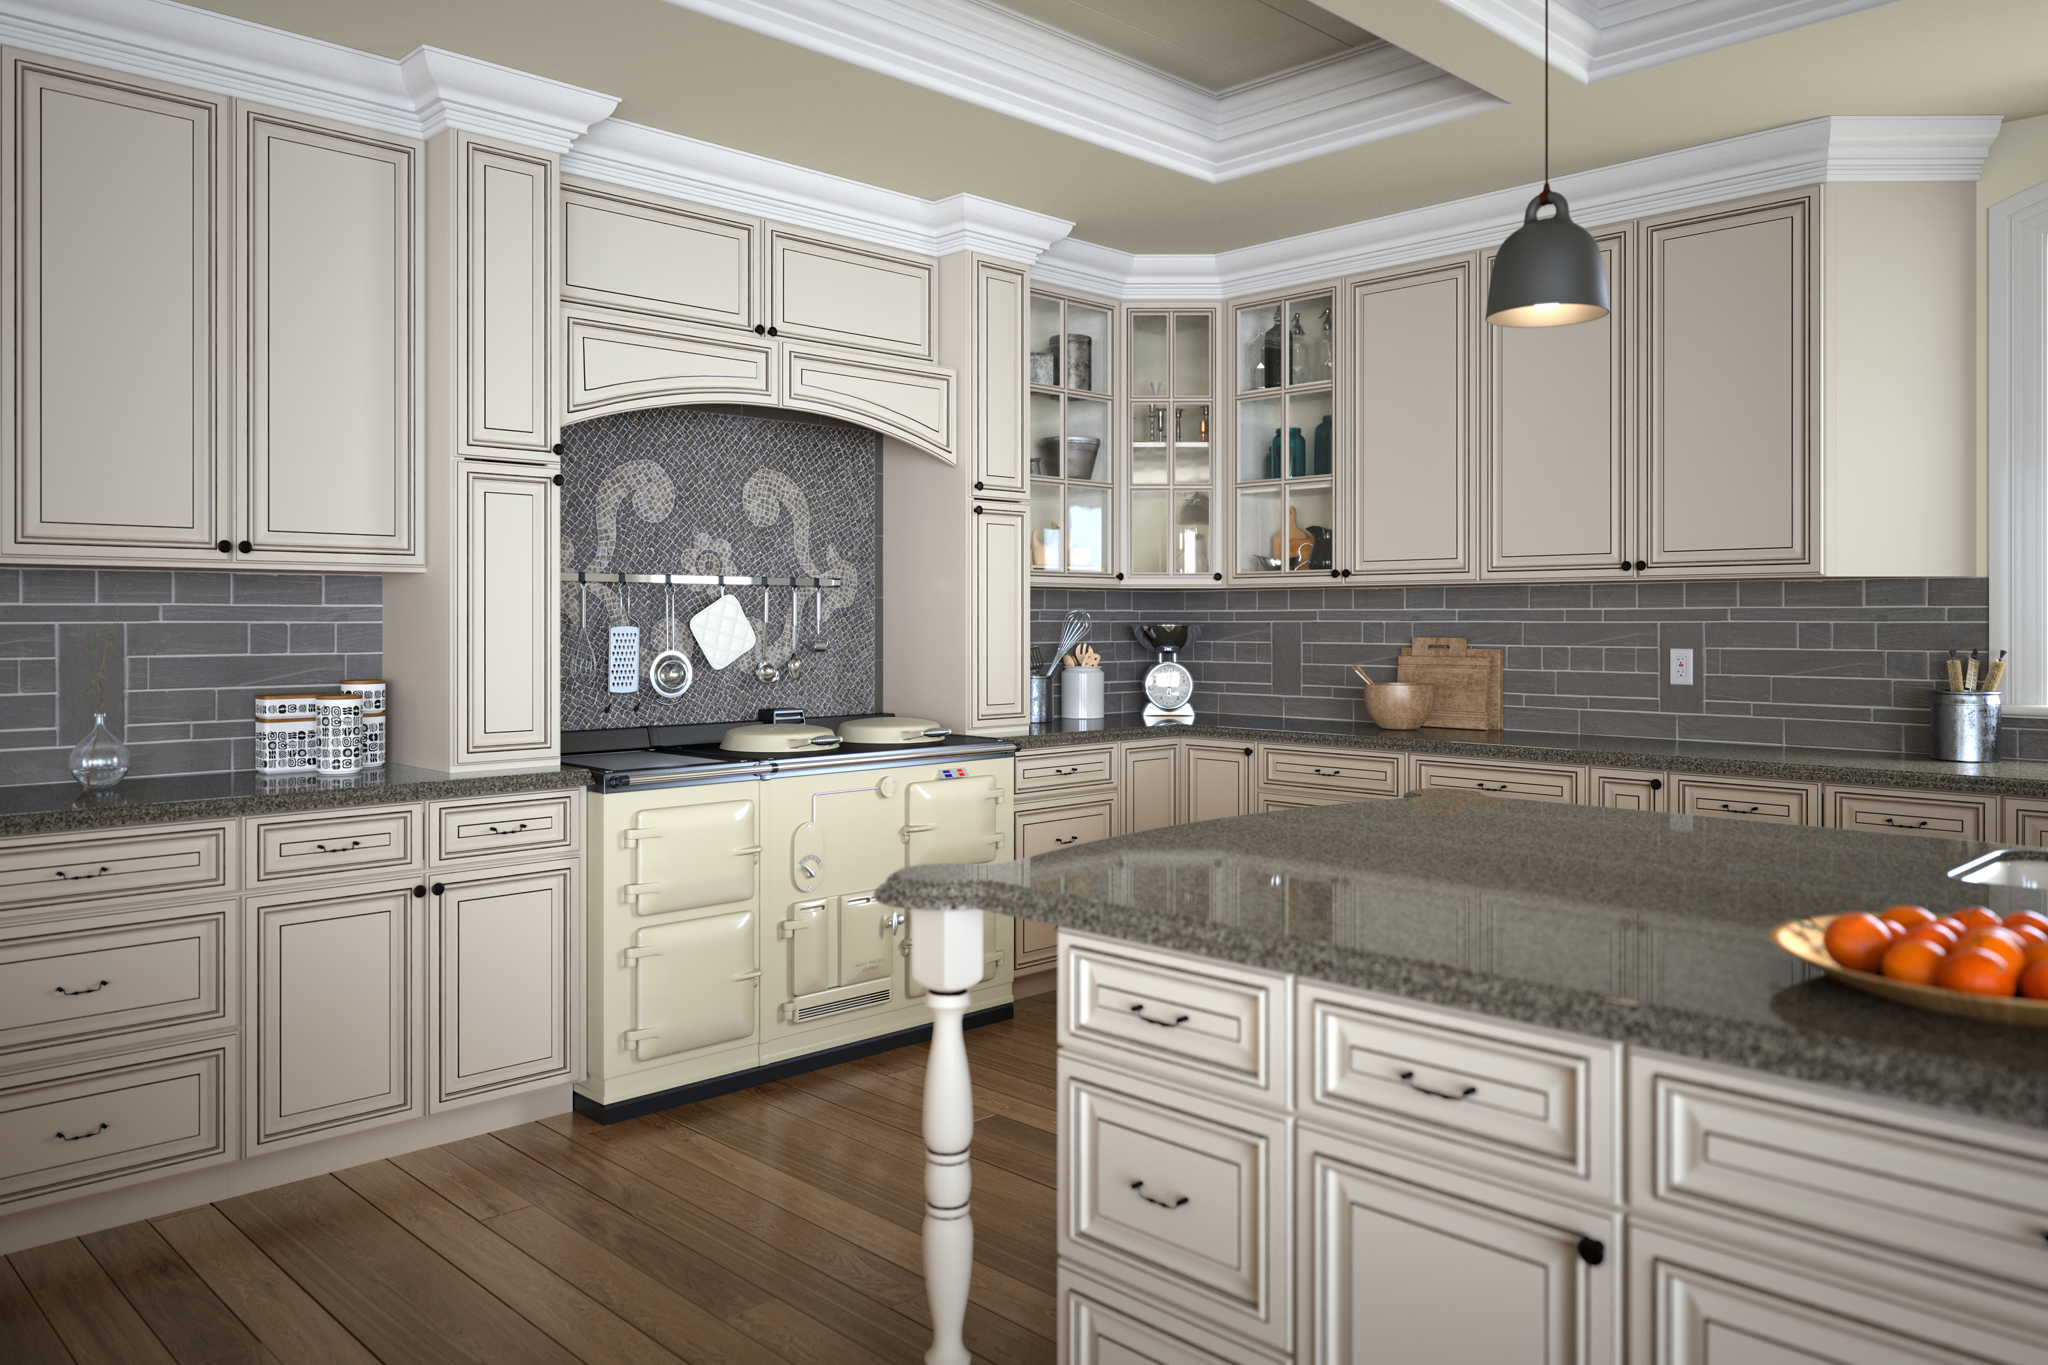 3d rendering of a white kitchen with stove and oranges